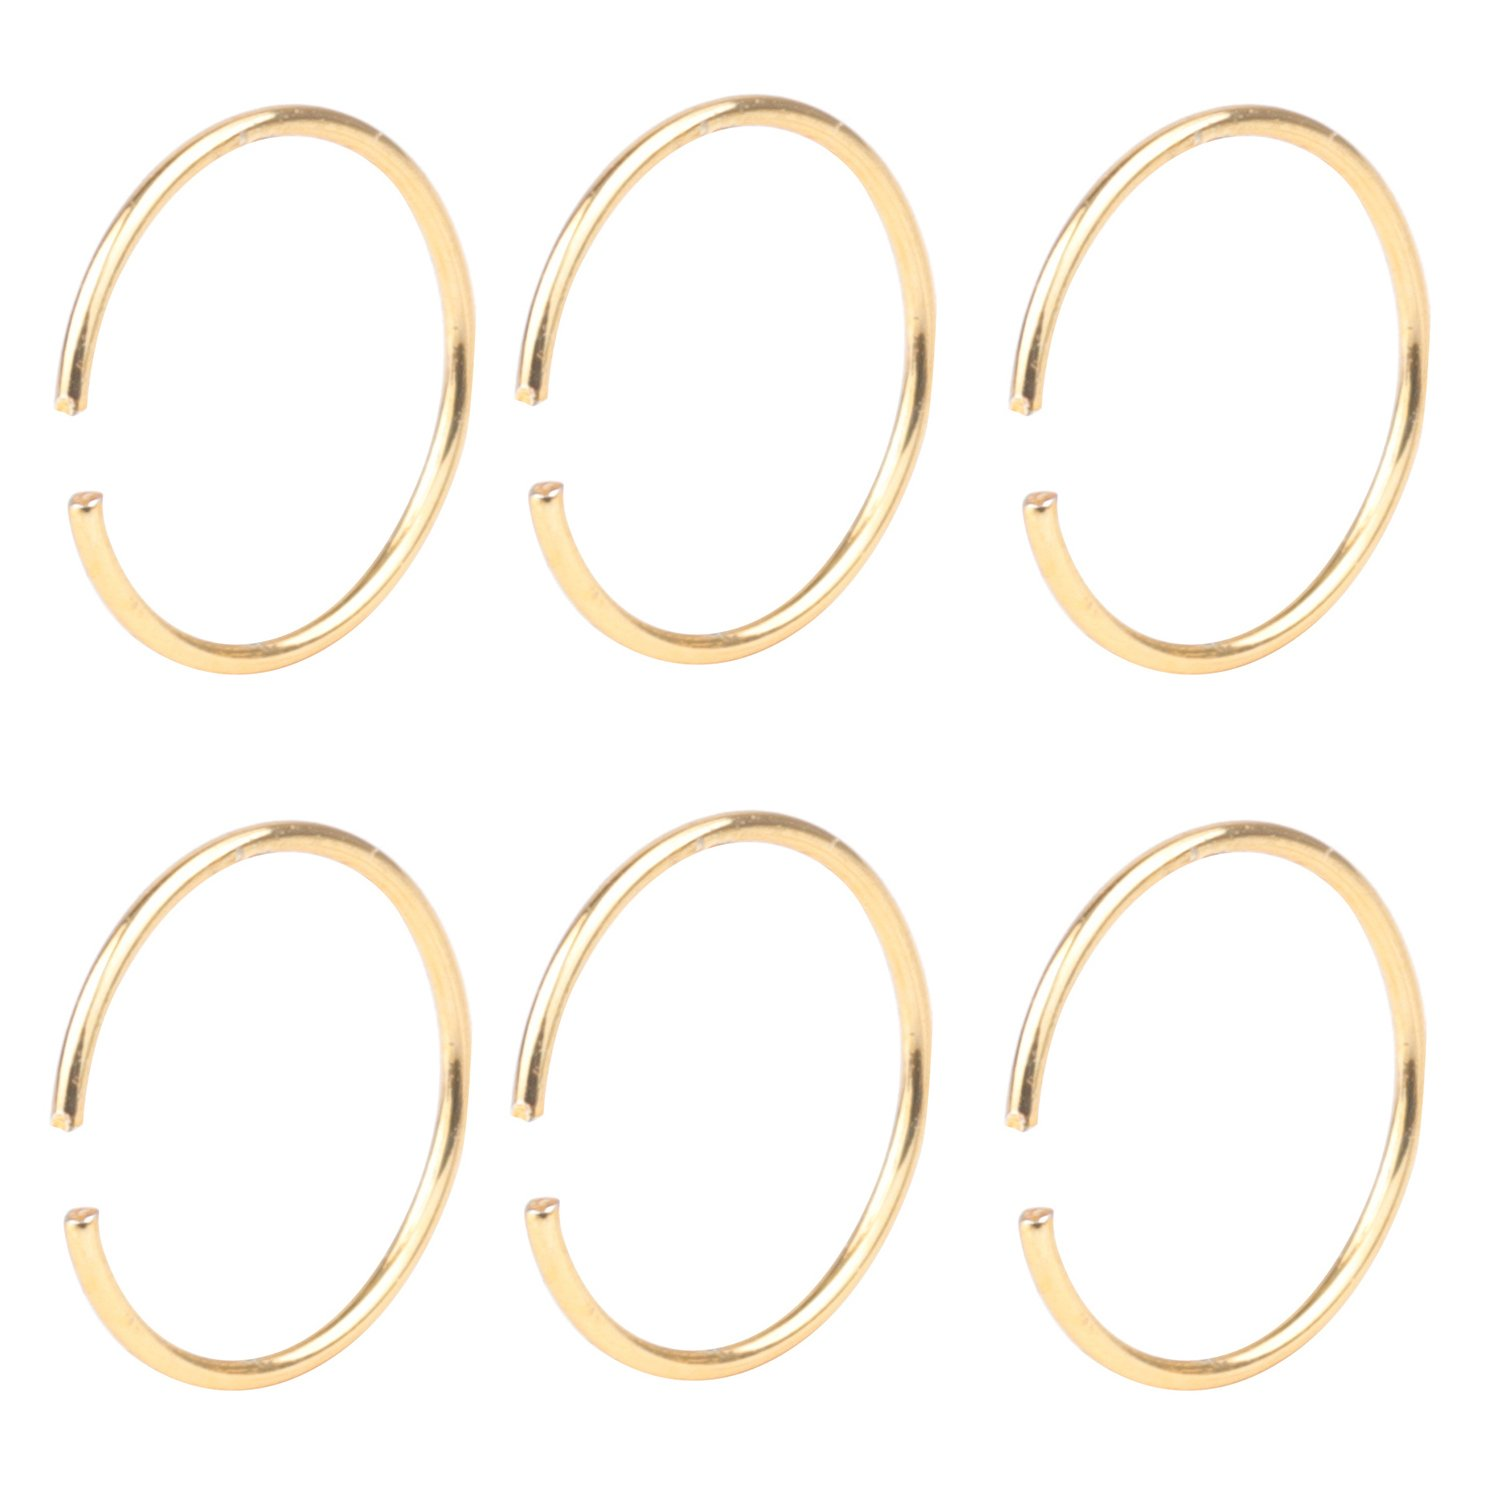 DRW 6pcs 22G Stainless Steel Non-Piercing Fake Clip on Closure Earrings Round Helix Cartilage Tragus Nose Lip Ear Hoop 10mm